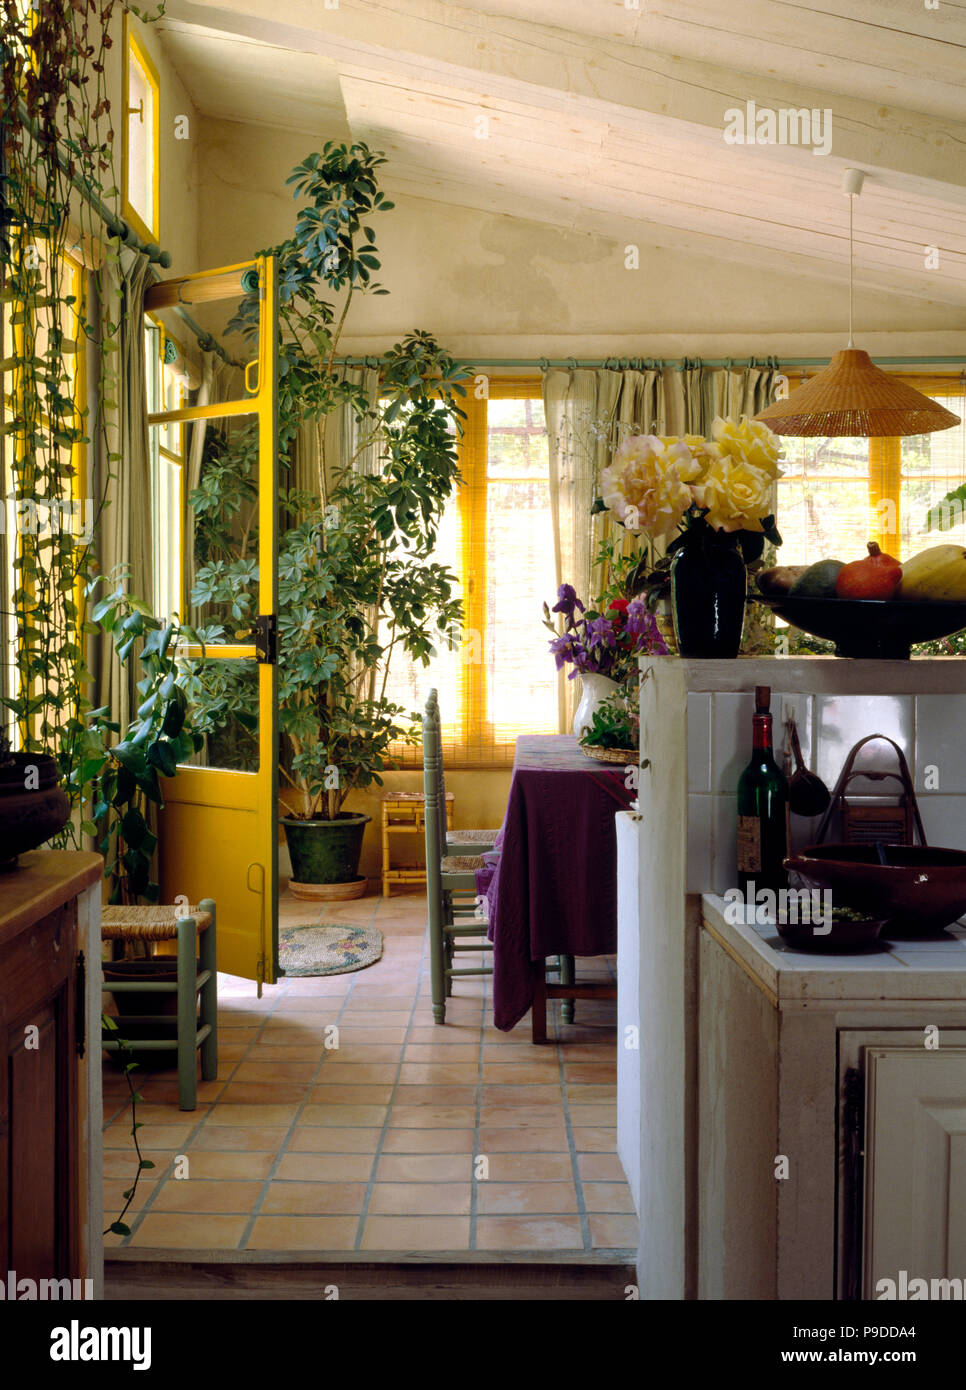 Terracotta Tiled Floor In A French Kitchen Dining Room With A Tall